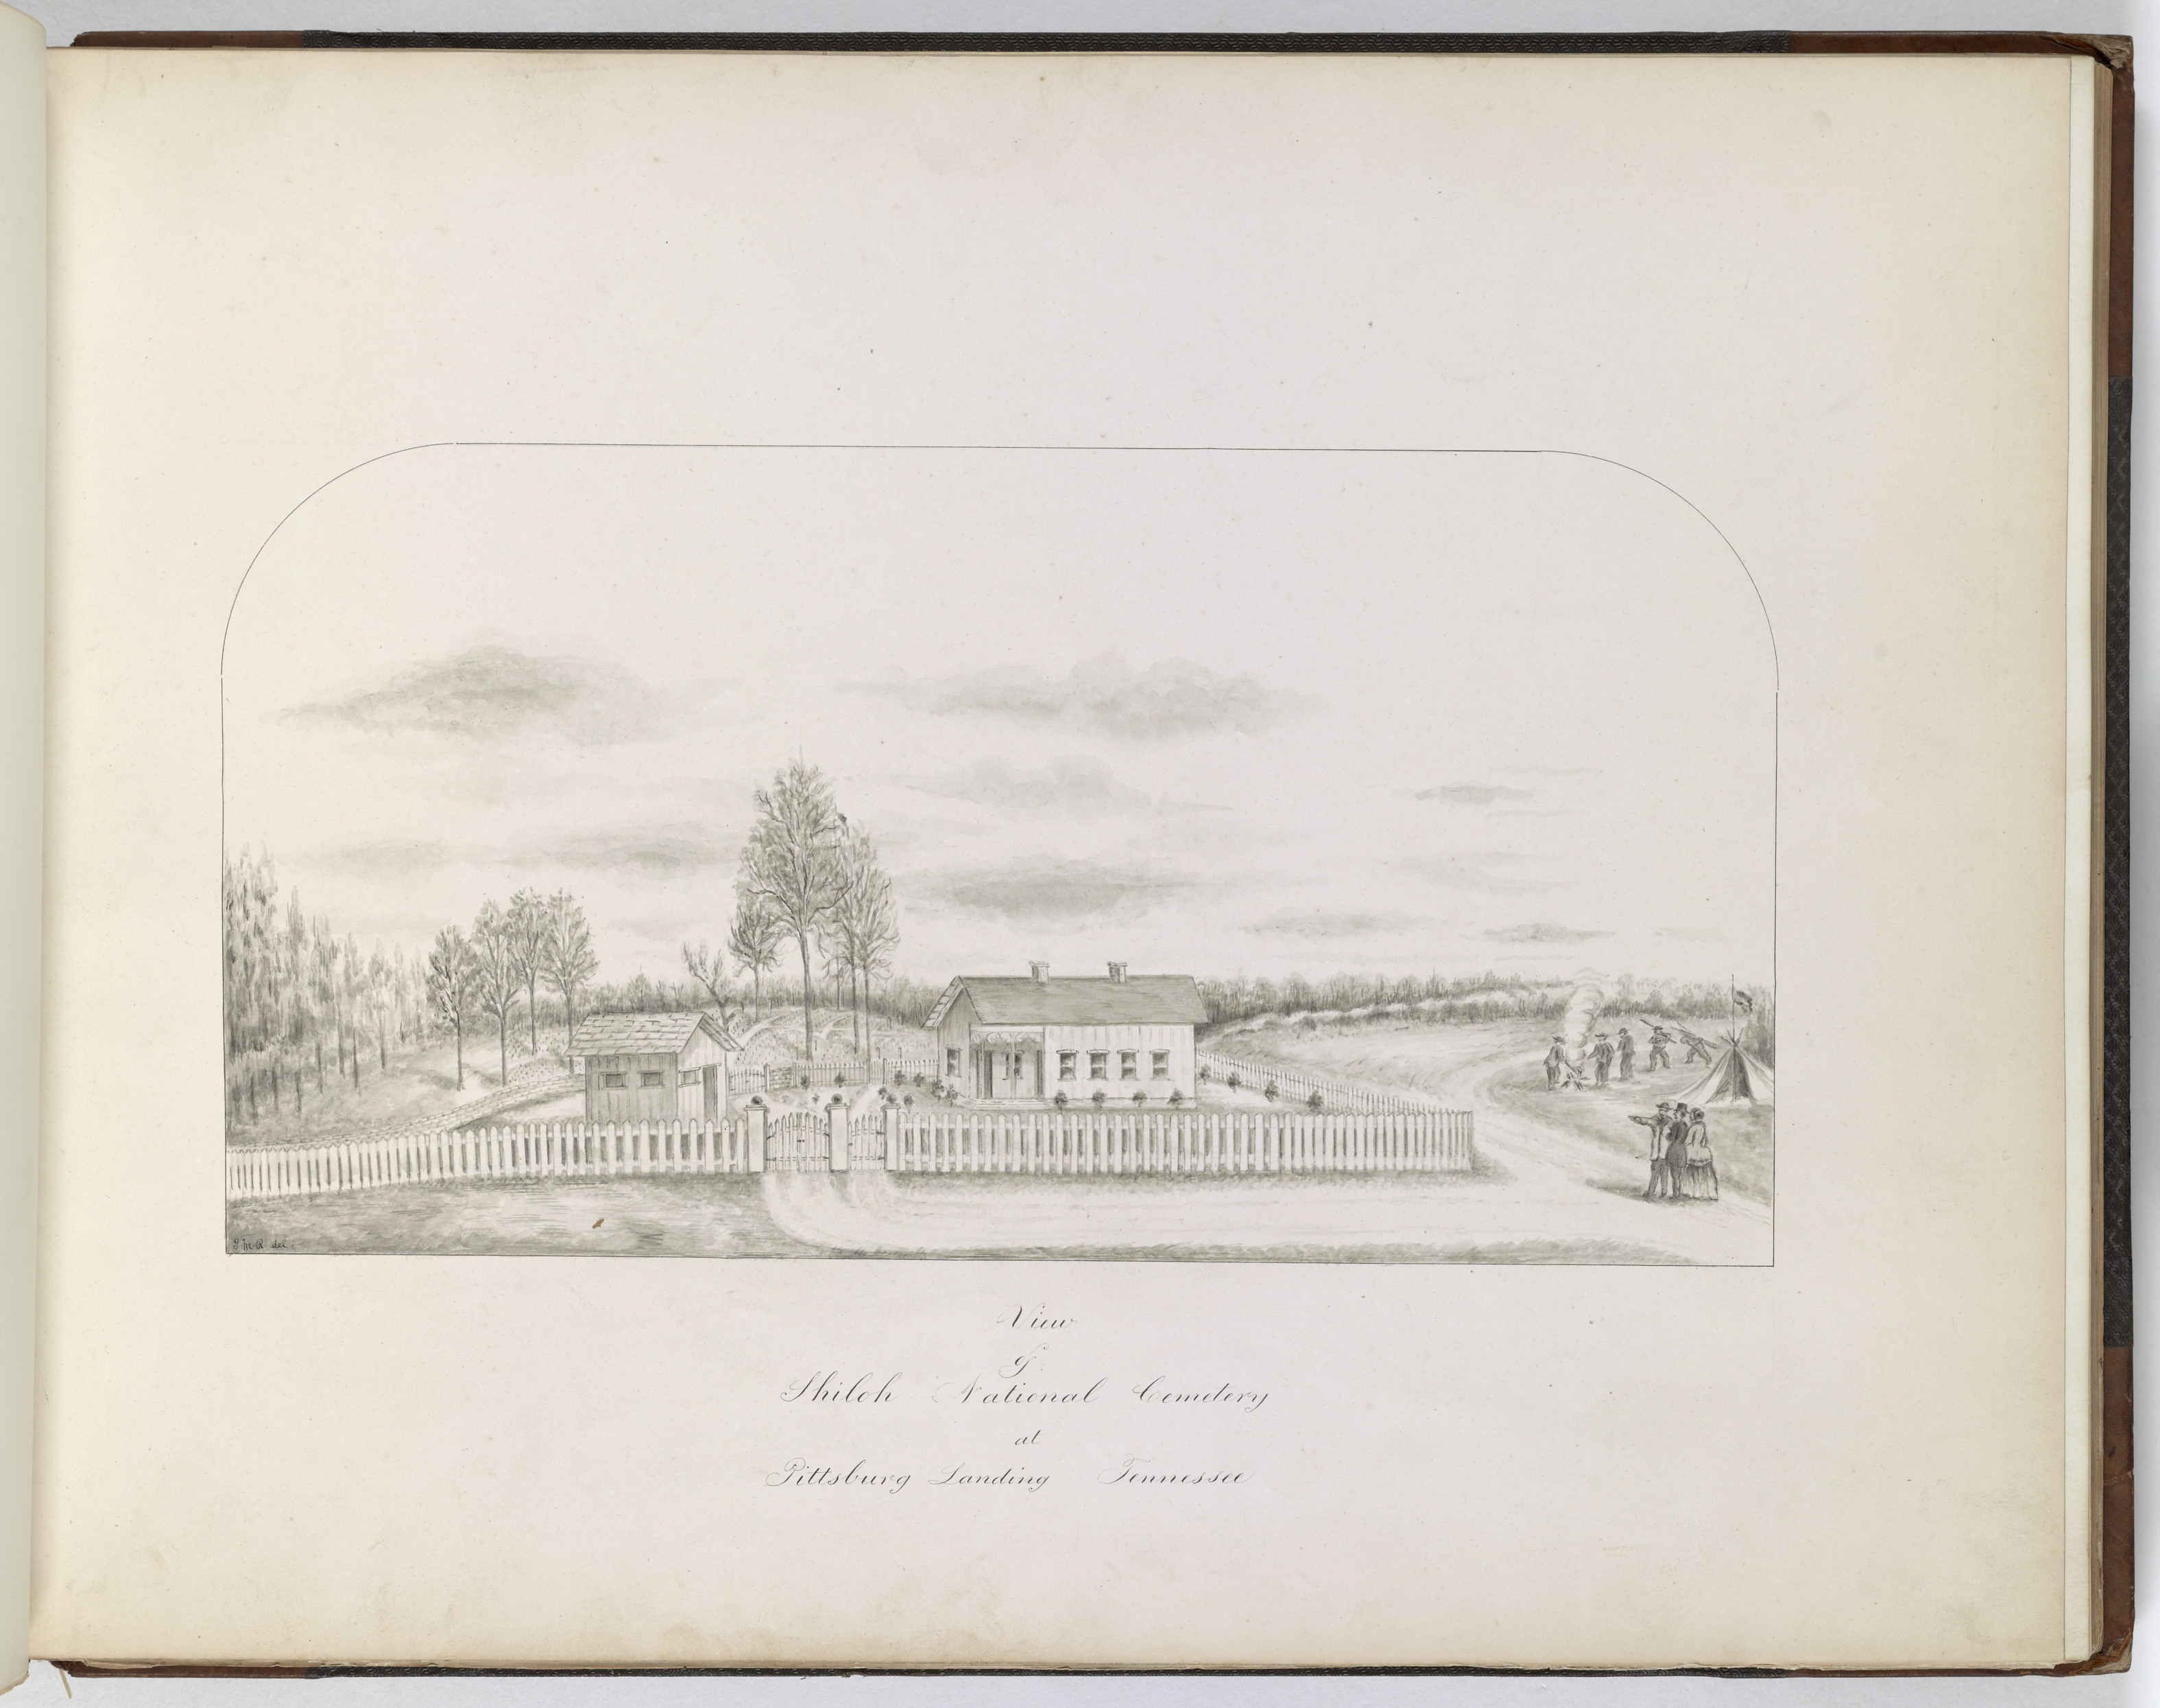 Drawing of Shiloh Cemetery from Whitman's Report on Cemeteries. National Archives, Records of the Office of the Quartermaster General